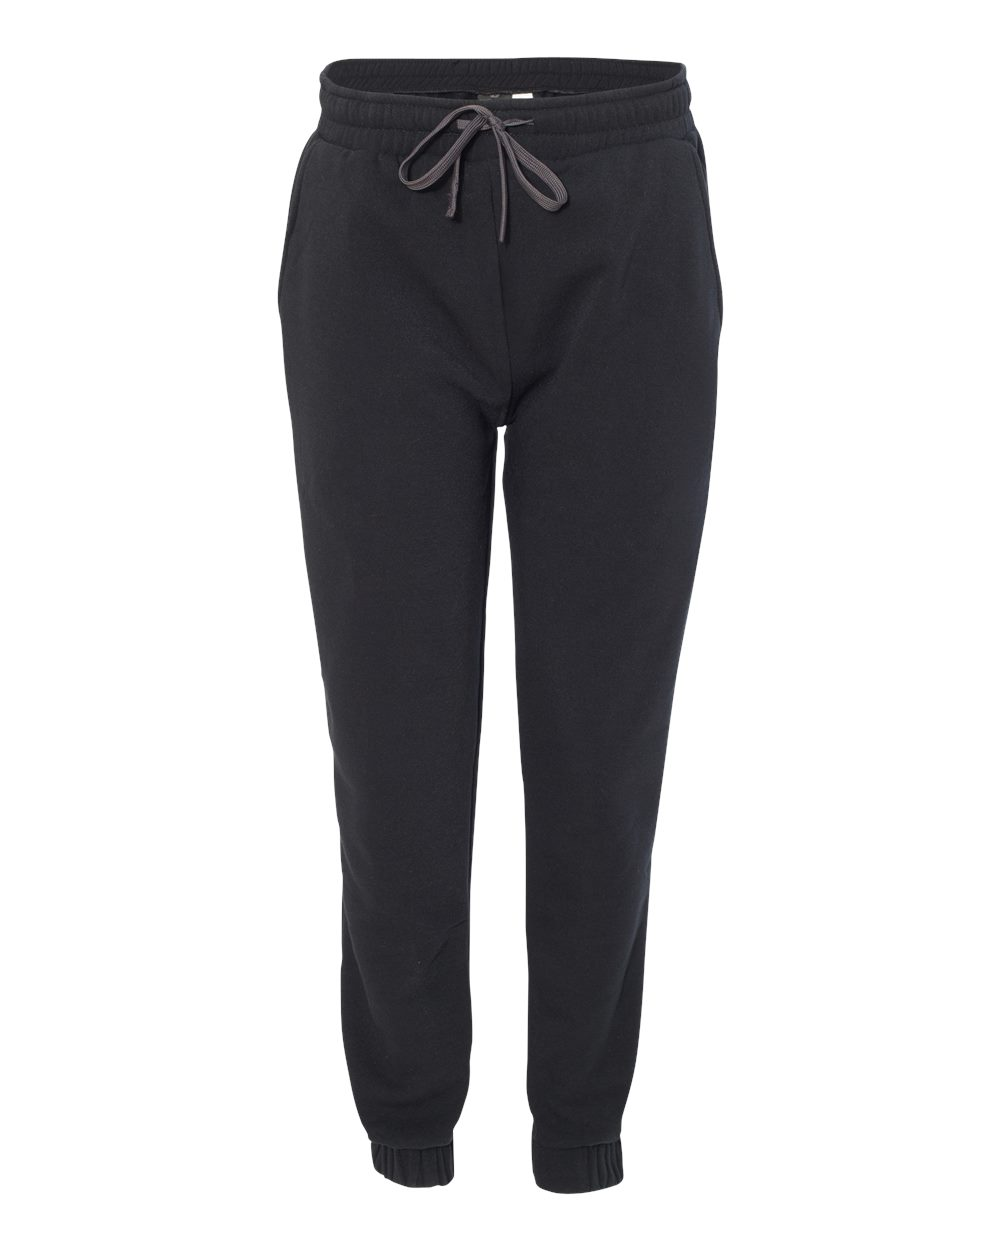 Burnside-Mens-Sweatpants-Fleece-Joggers-With-Pockets-8800-up-to-3XL thumbnail 6